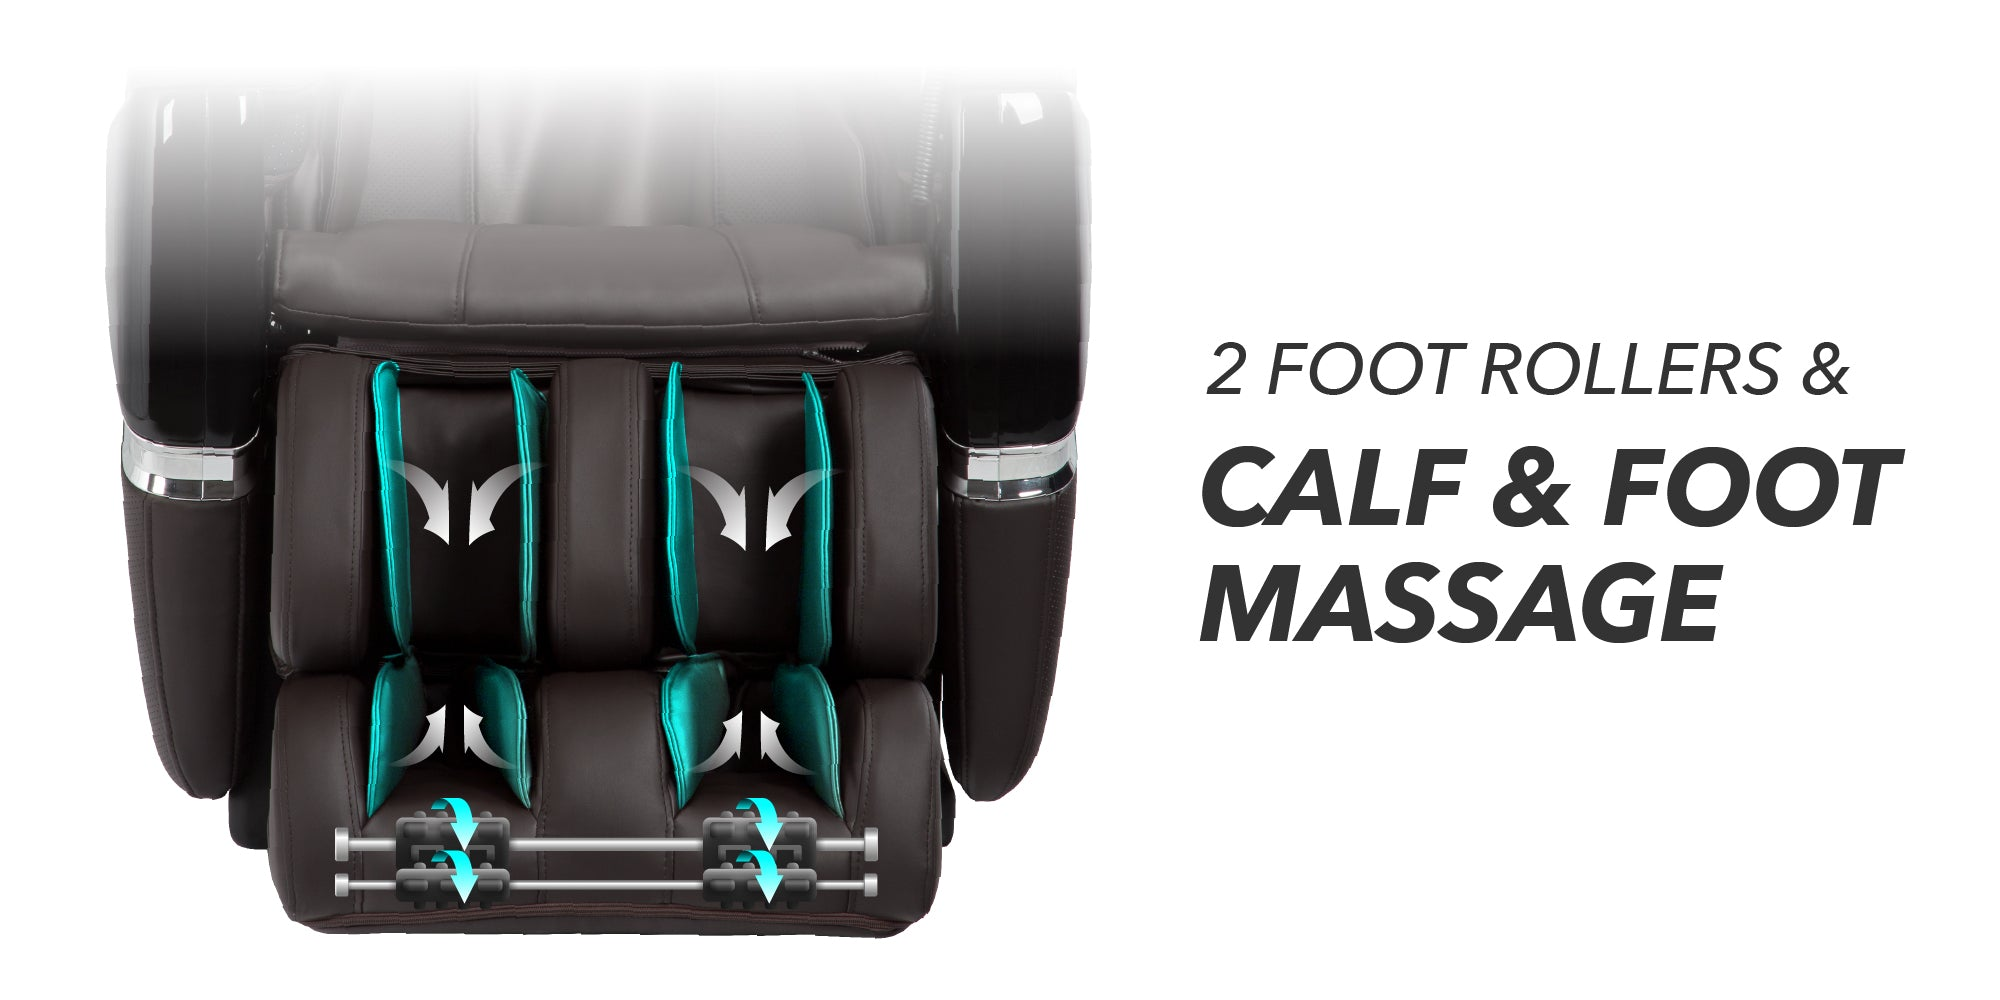 2 Foot Rollers, Calf & Foot Massage